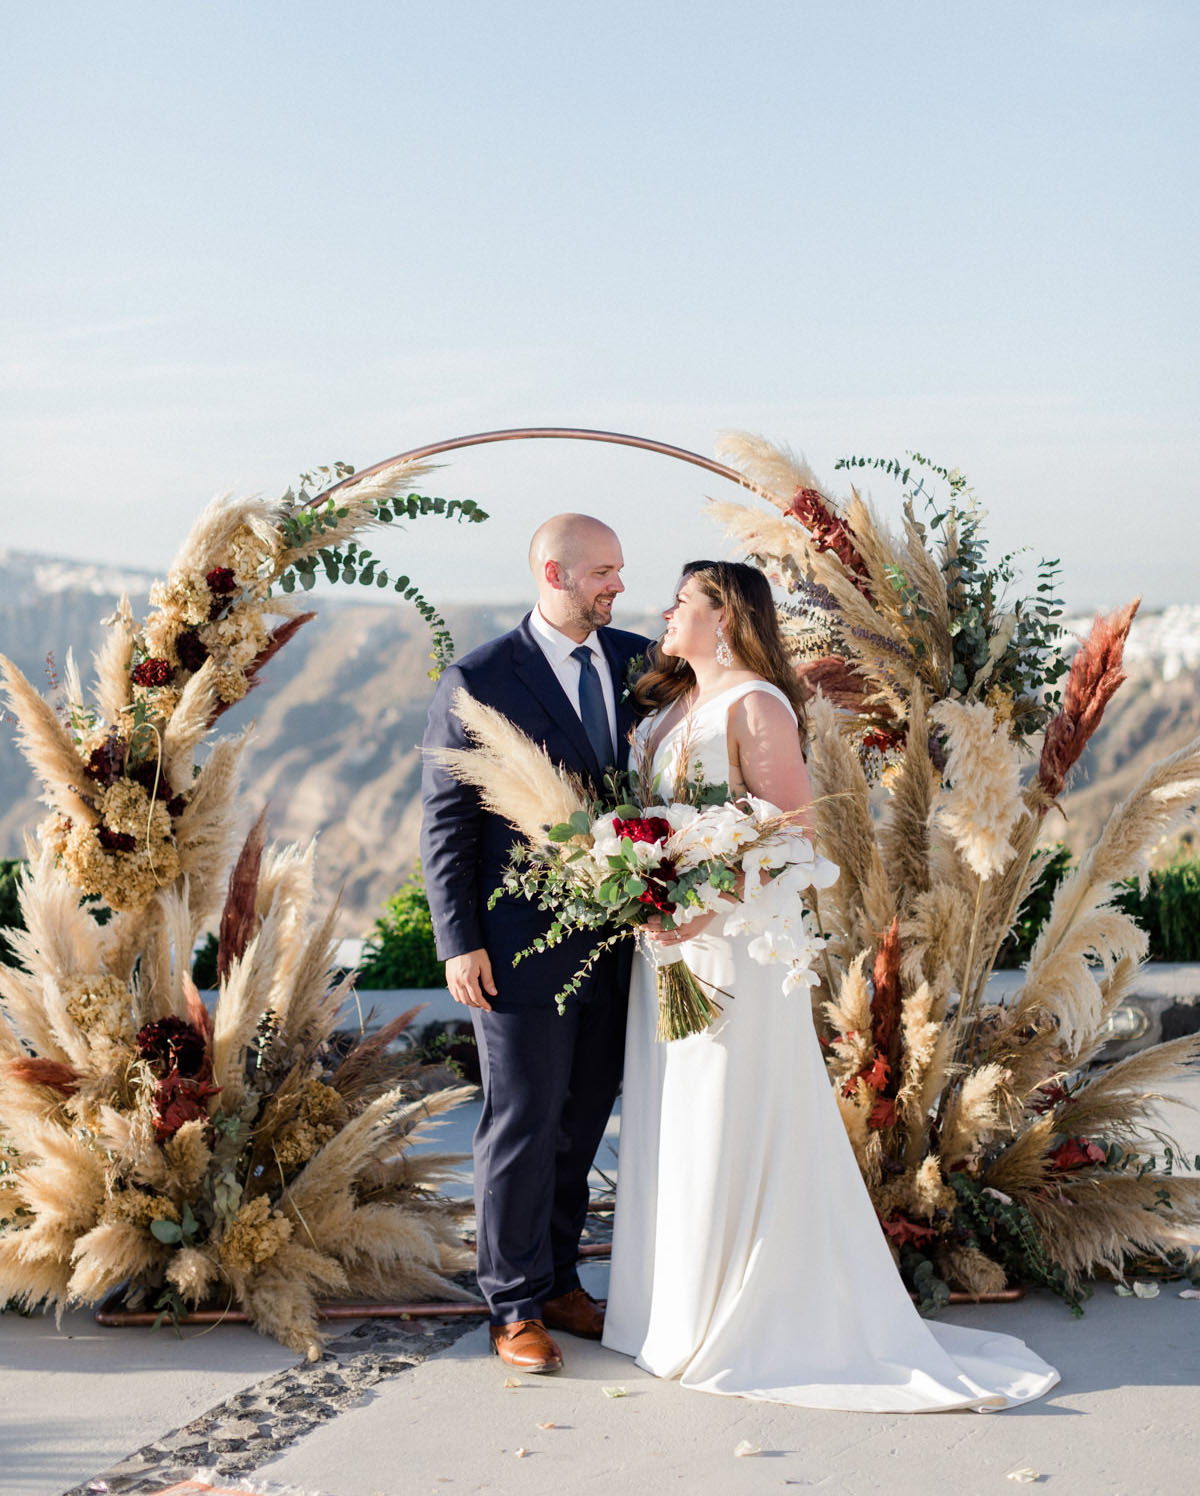 Cliffside Winery Wedding in Santorini with Romantic Pampas Grass Decor